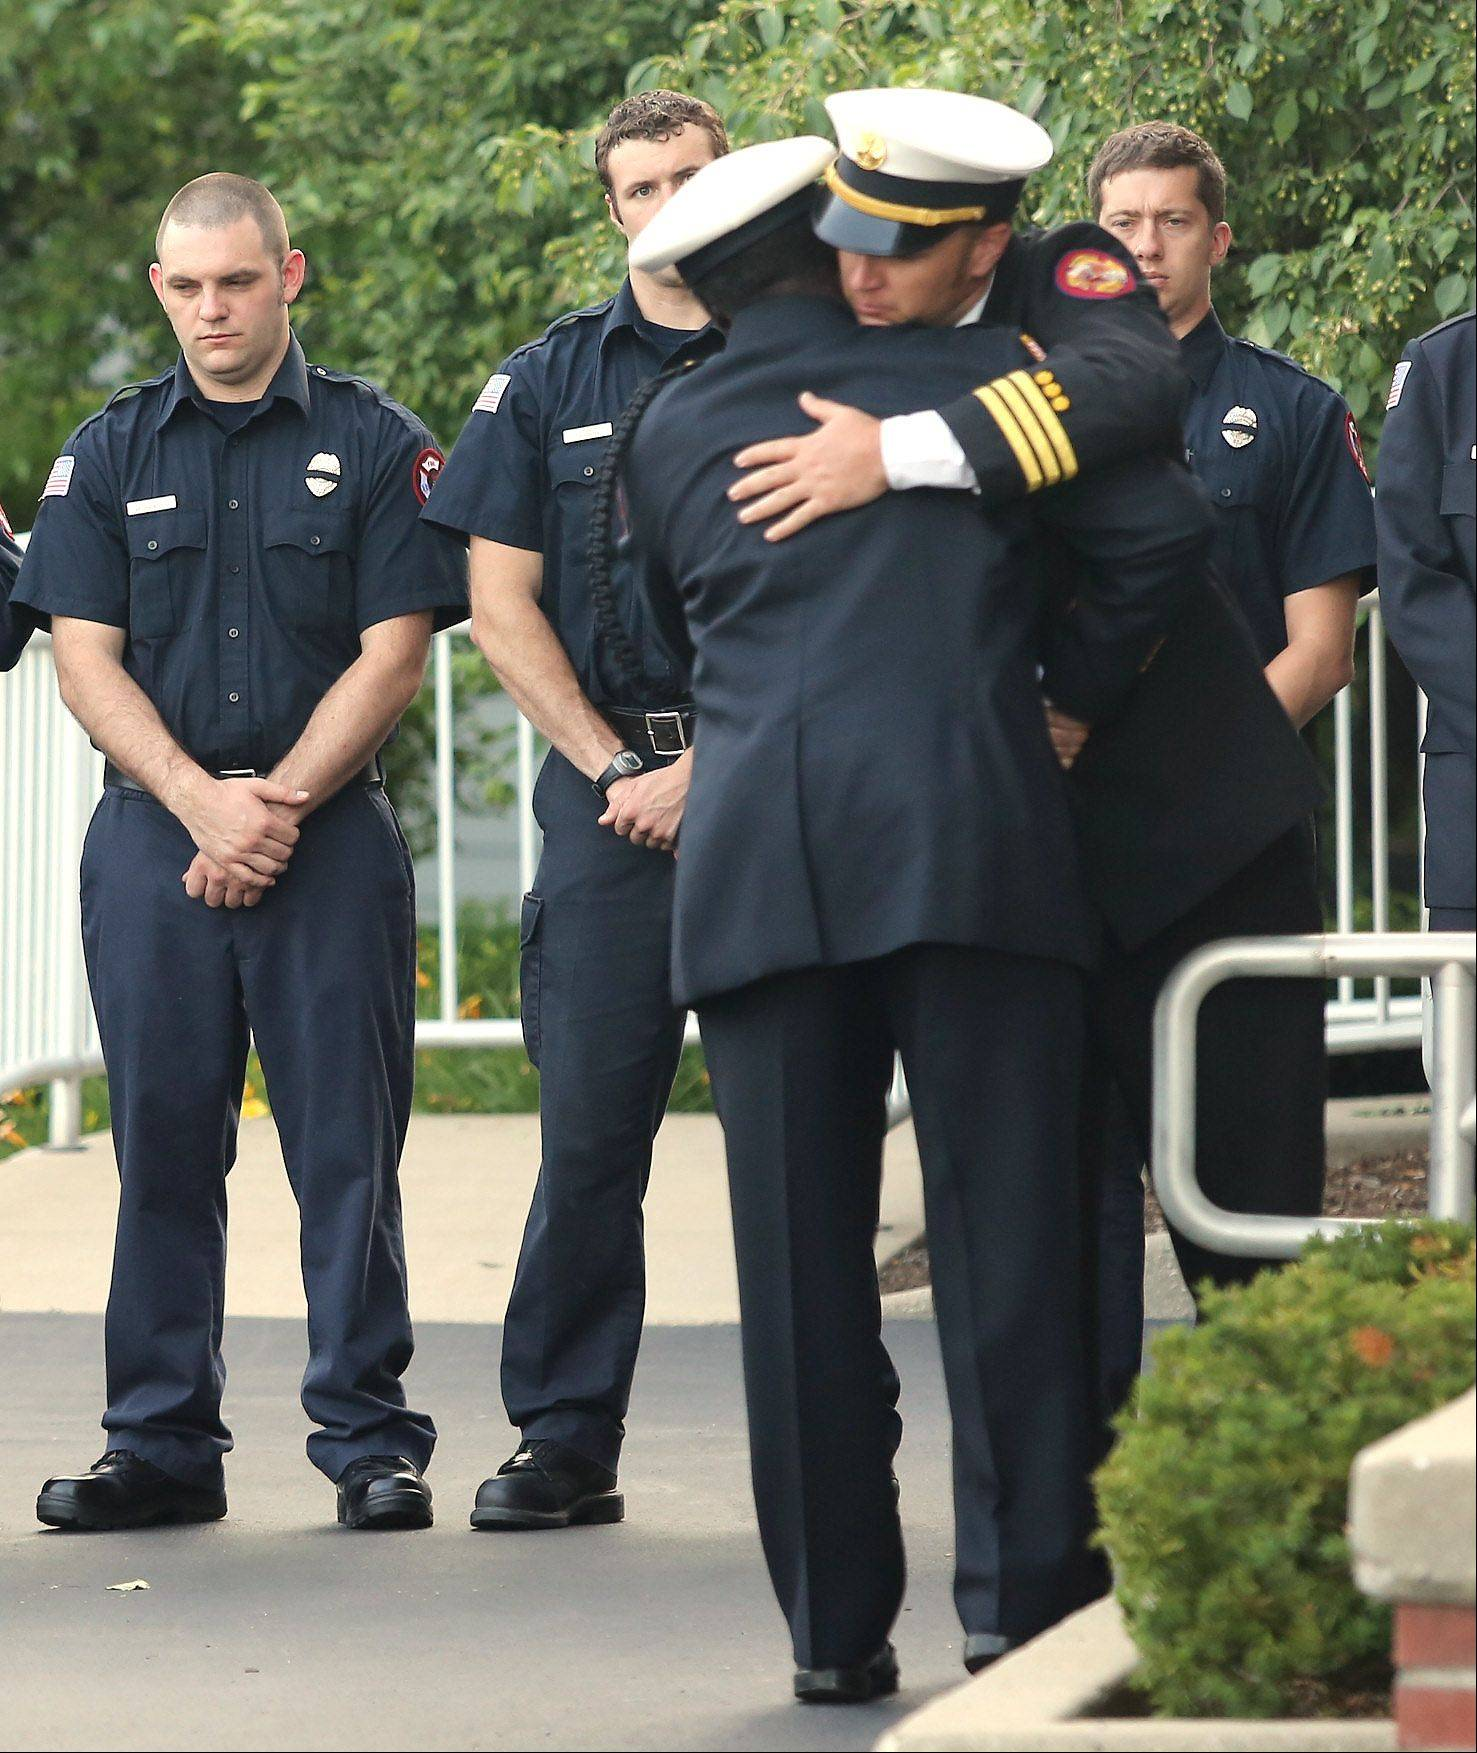 Prescott Battalion Chief Cory Moser, of Arizona, right, hugs another firefighter during the memorial service for Anthony Rose on Thursday at Congdon Funeral Home in Zion. Rose was one of 19 Granite Mountain Hotshots killed June 30 battling a wildfire in Arizona.